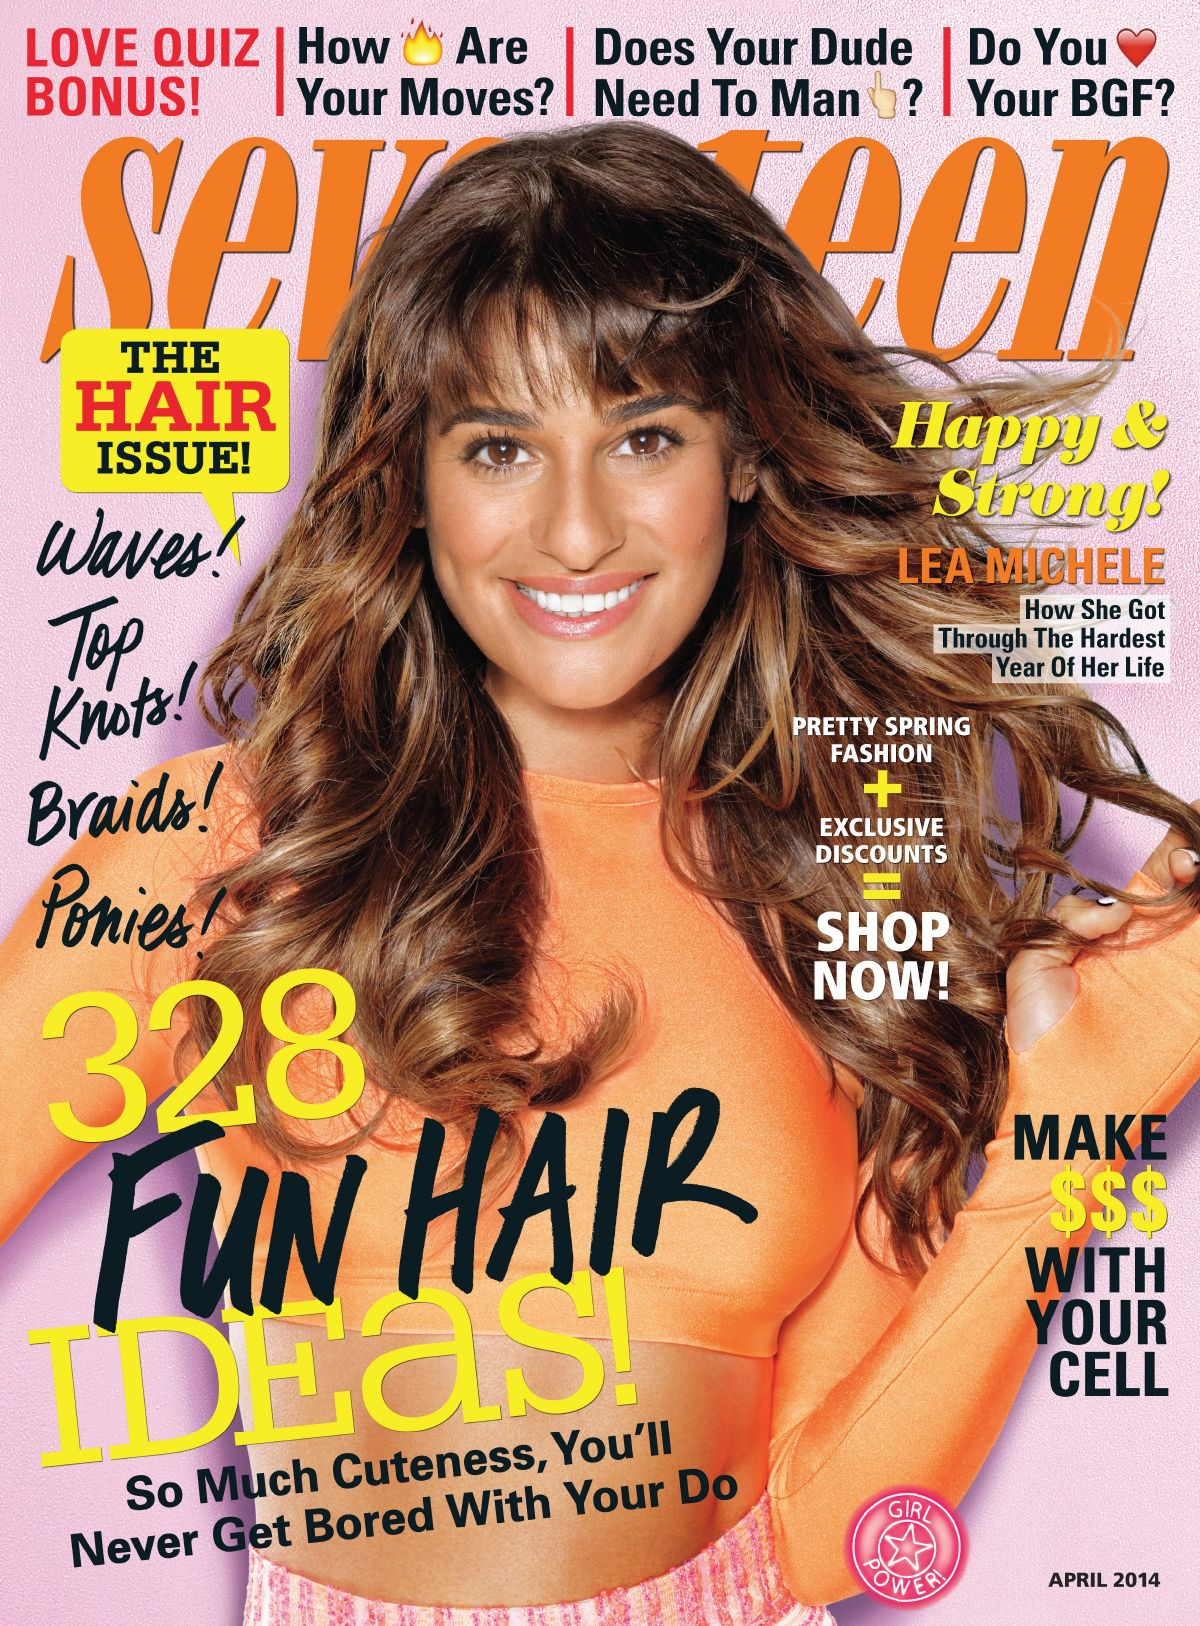 LEA MICHELE on the Cover of Seventeen Magazine, April 2014 Issue